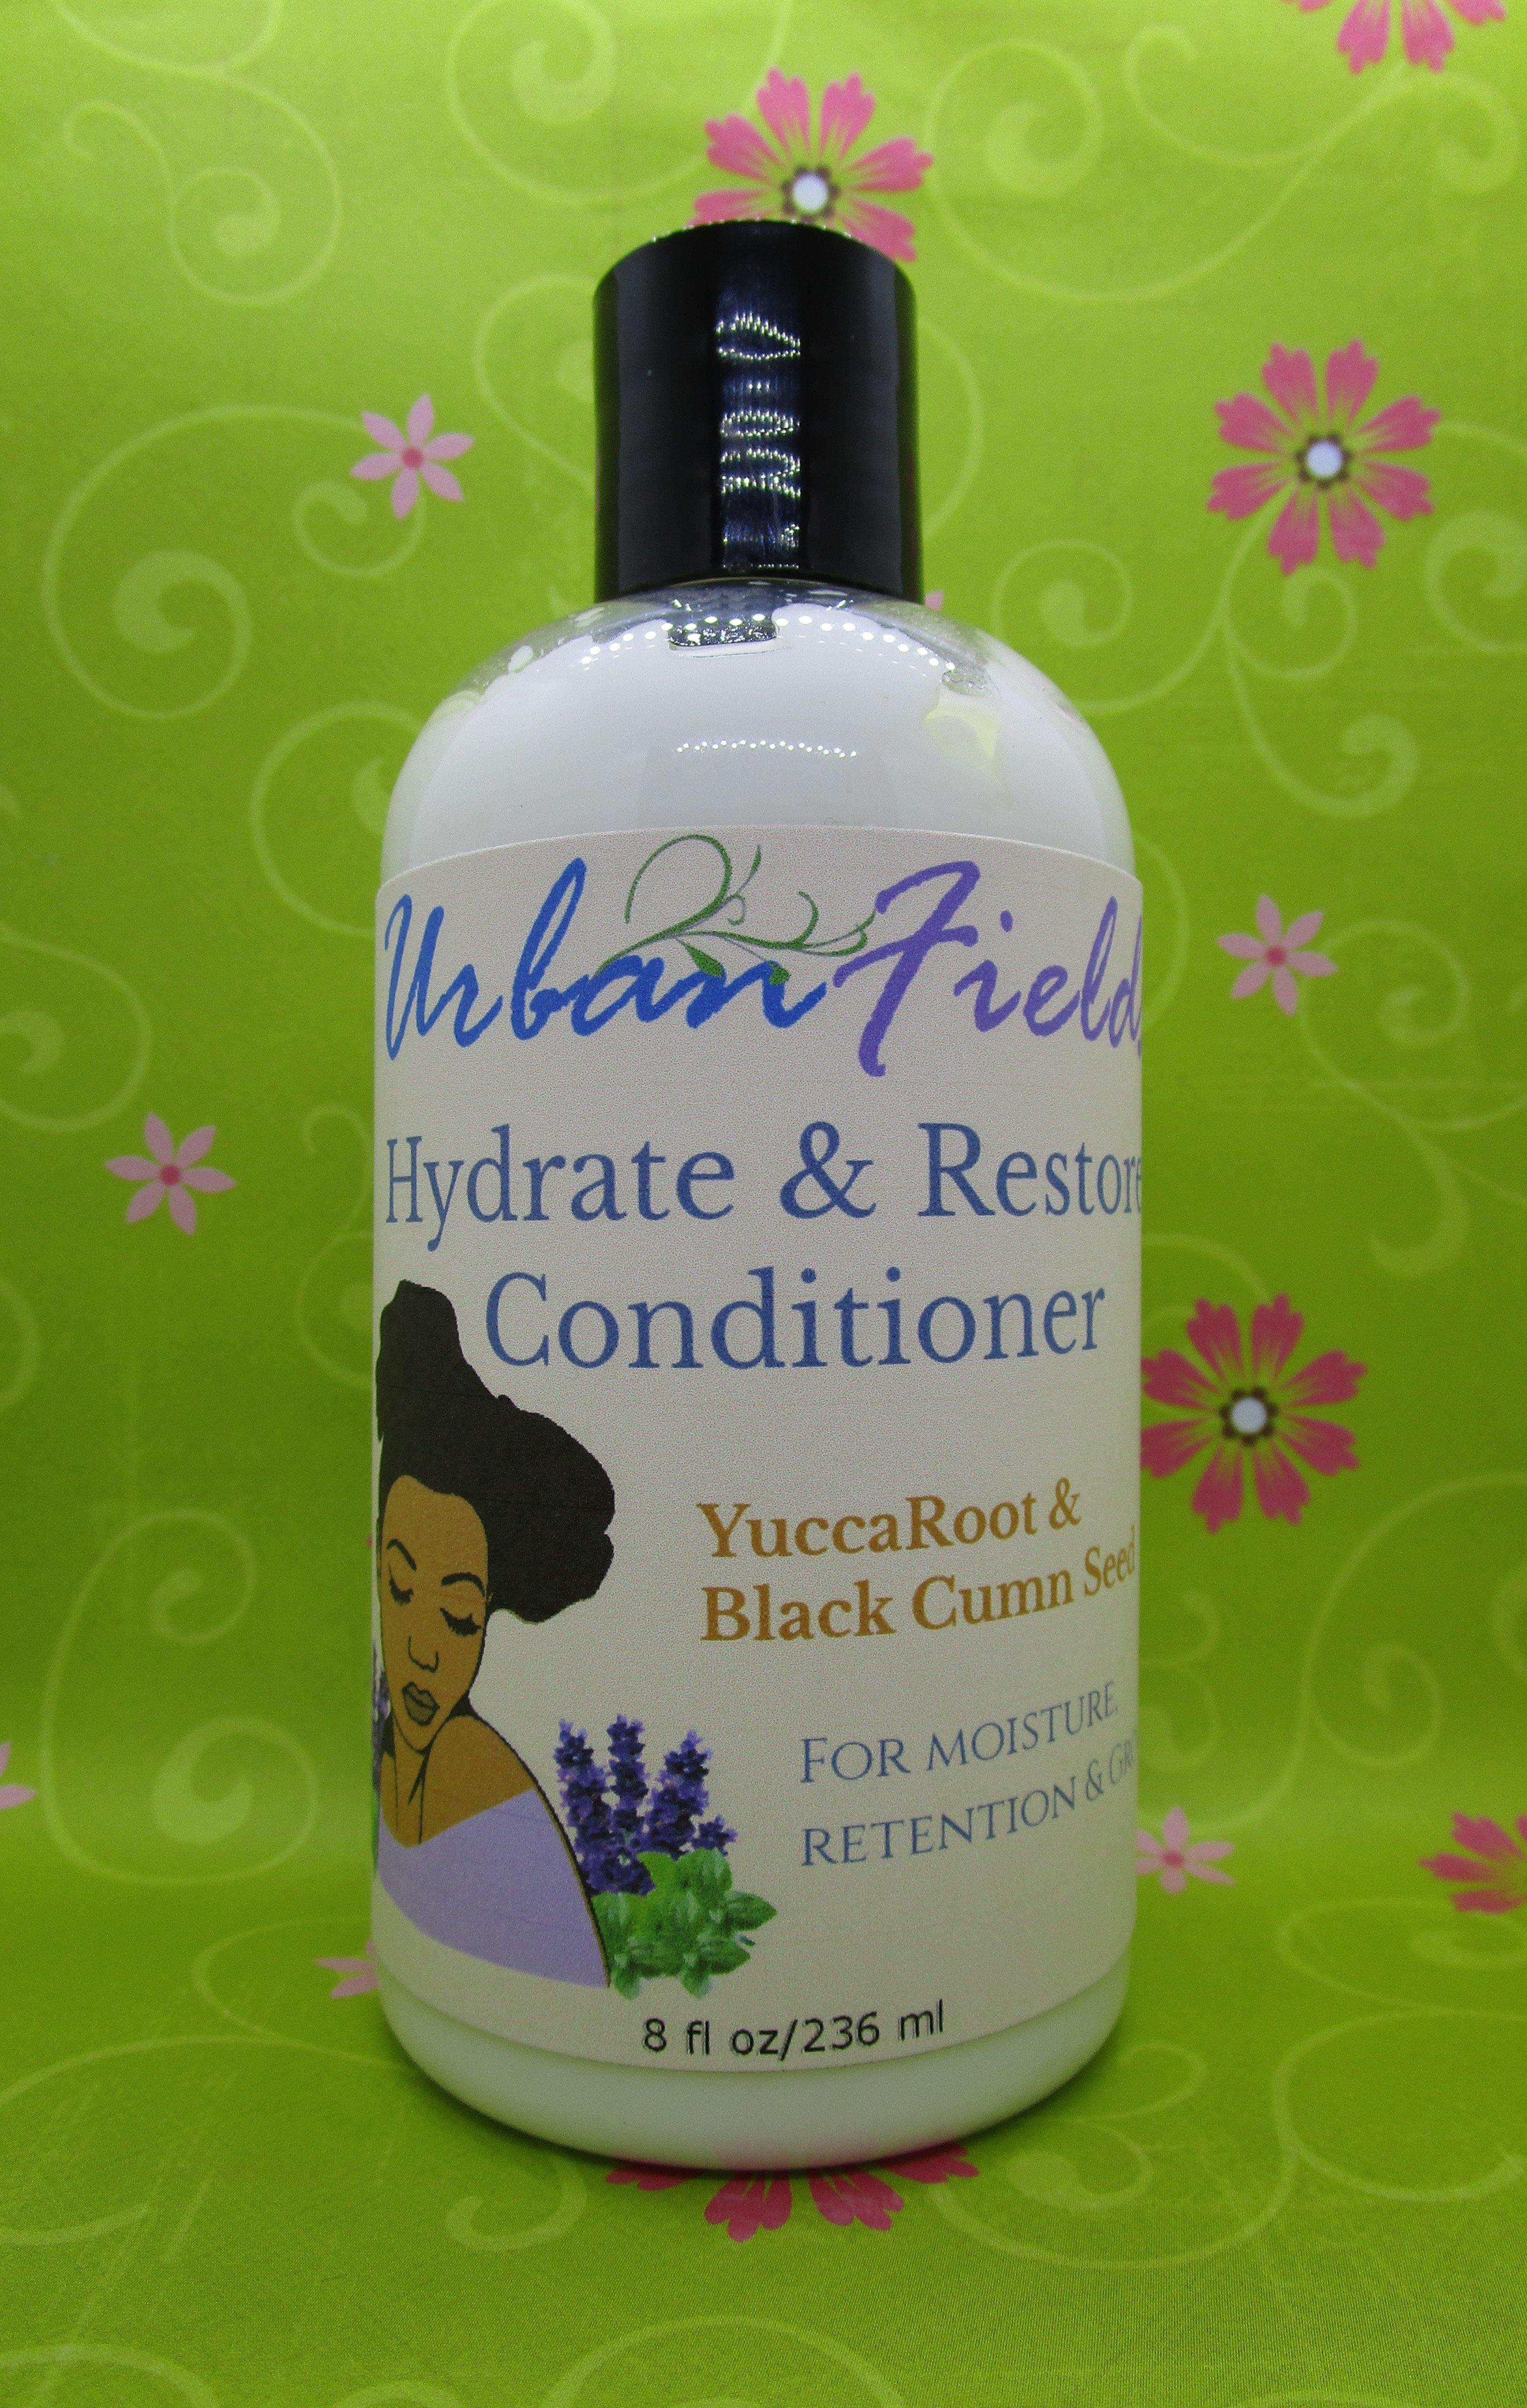 CLEANSE & REPAIR  - YUCCA ROOT & BLACK CUMIN SEED CONDITIONER